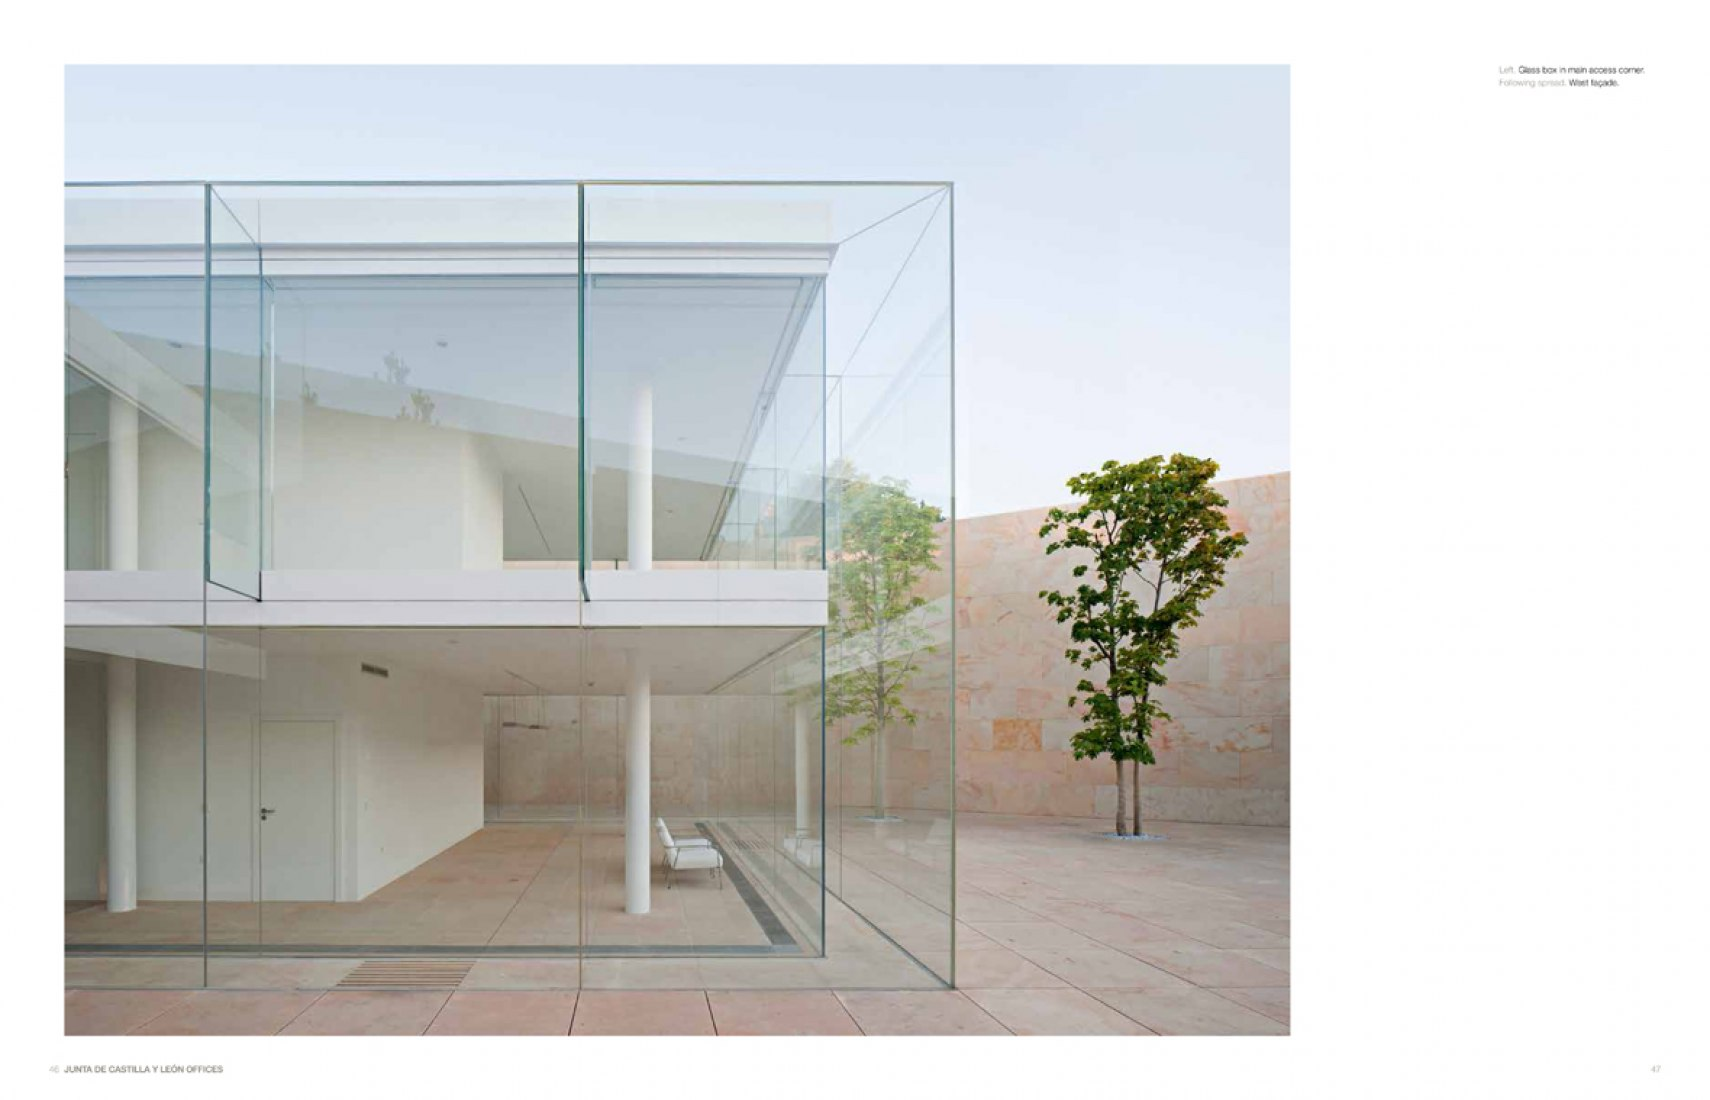 Pages of the book. 'Campo Baeza, complete works' by Thames & Hudson Publishers. Image courtesy of Estudio Arquitectura Campo Baeza.